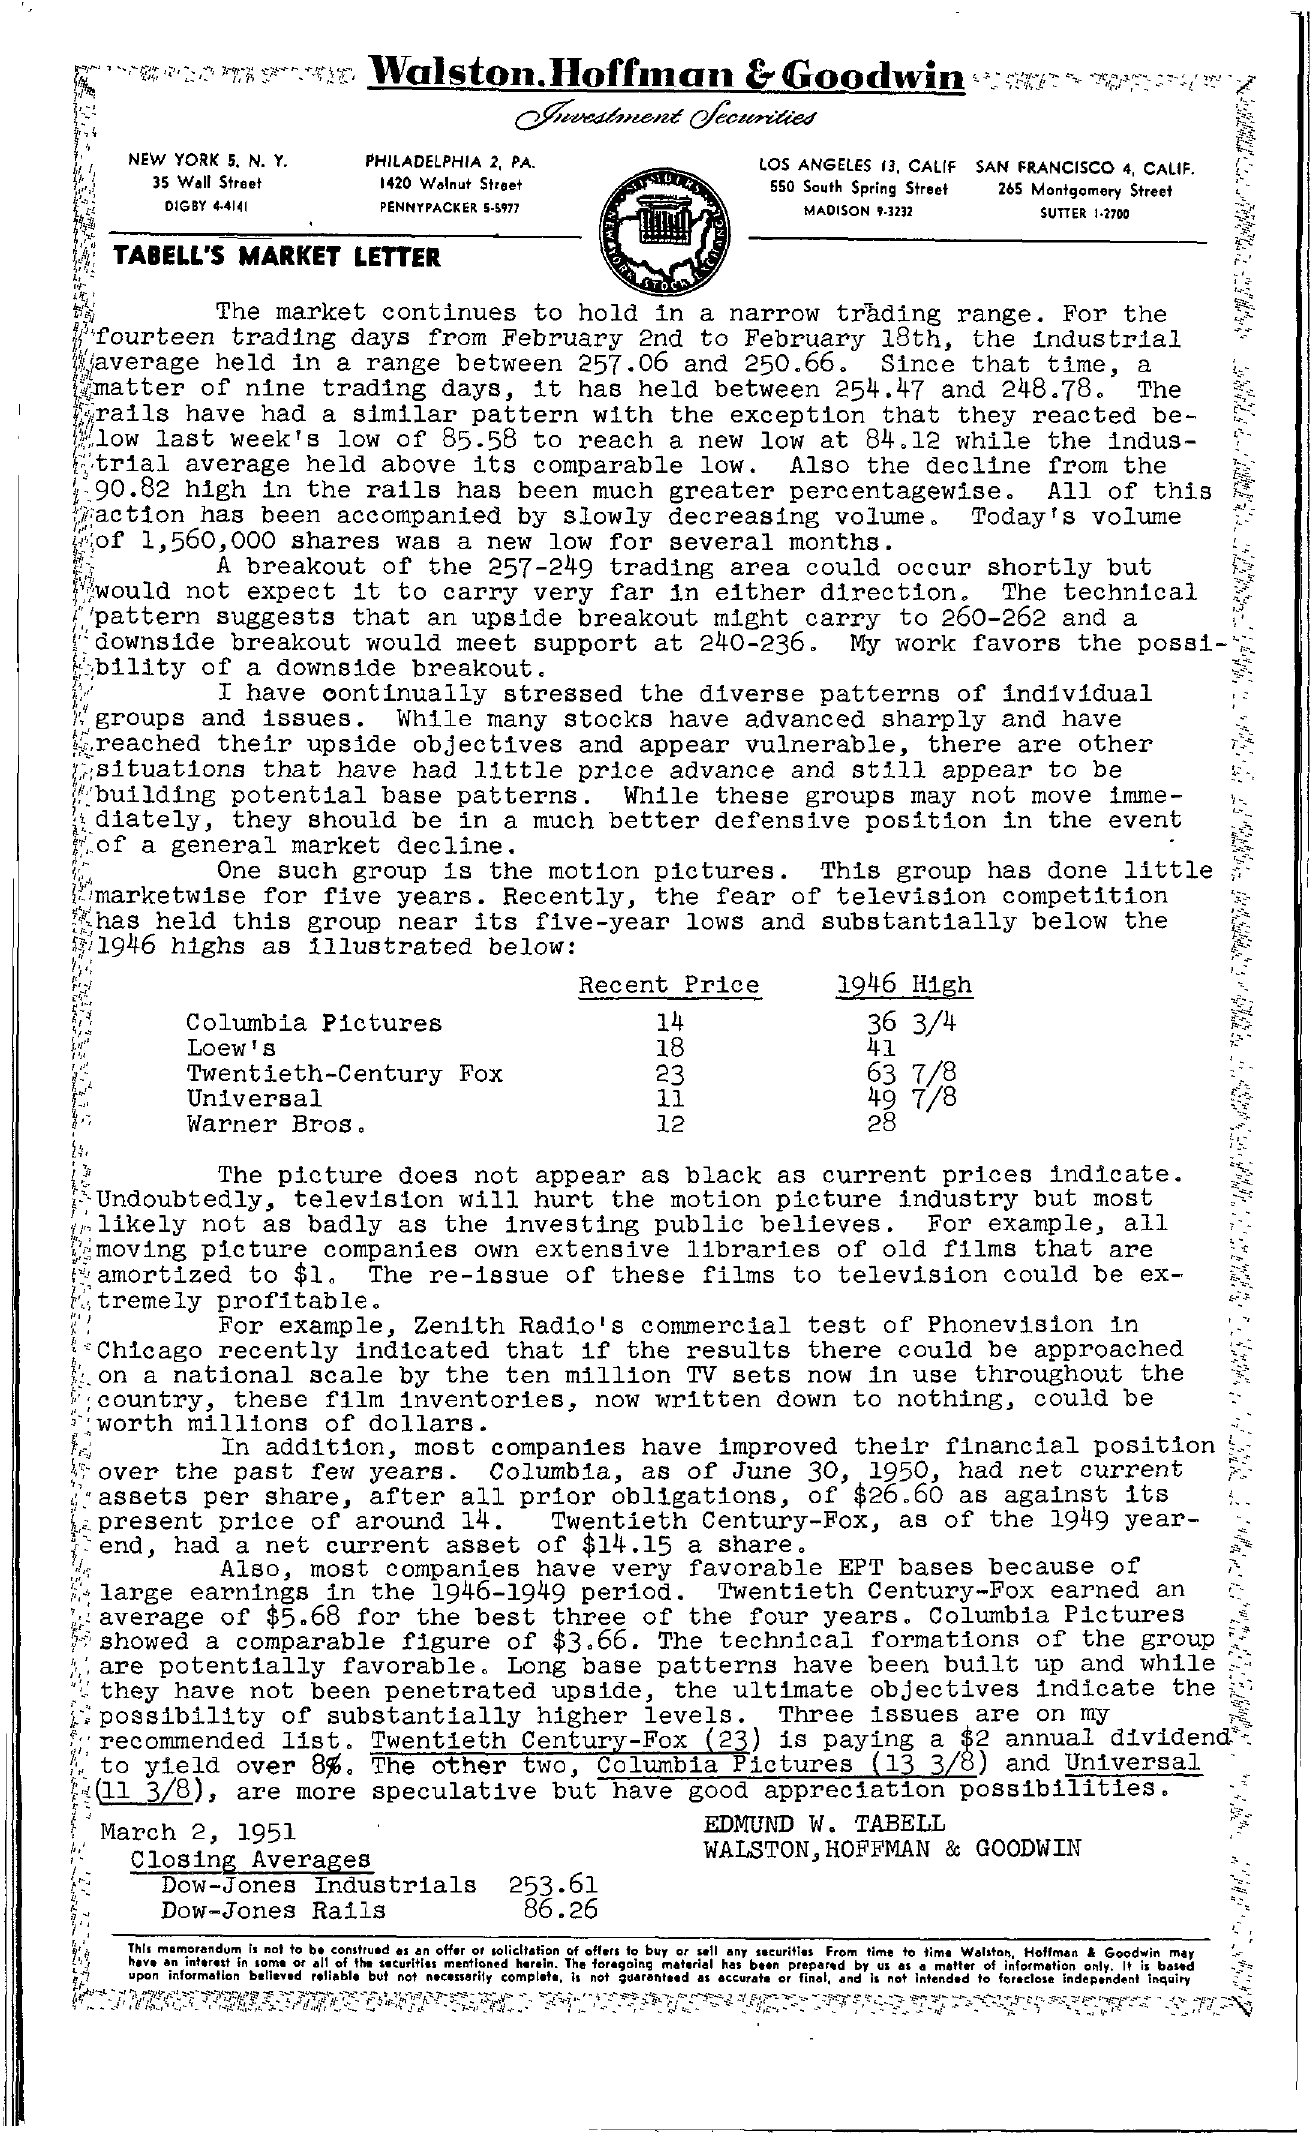 Tabell's Market Letter - March 02, 1950